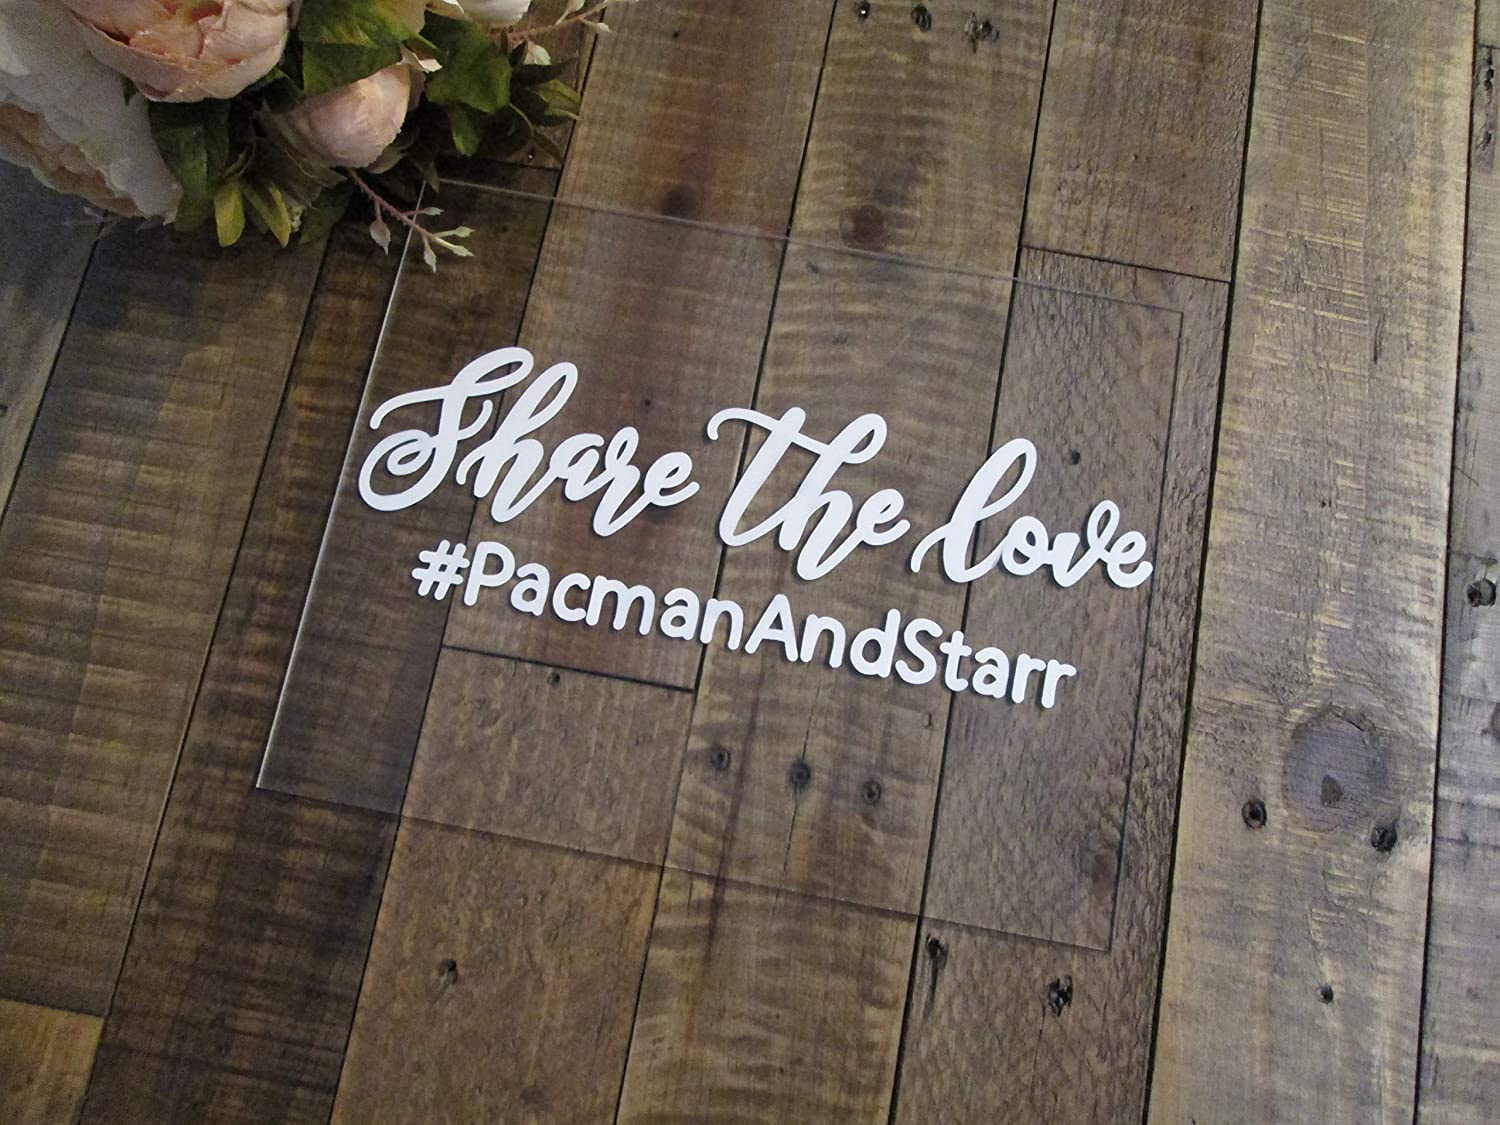 hand painted acrylic wedding sign with stand bridal shower or engagement party decor rustic modern wedding decor capture the love instagram wedding decor Wedding hashtag share the love sign